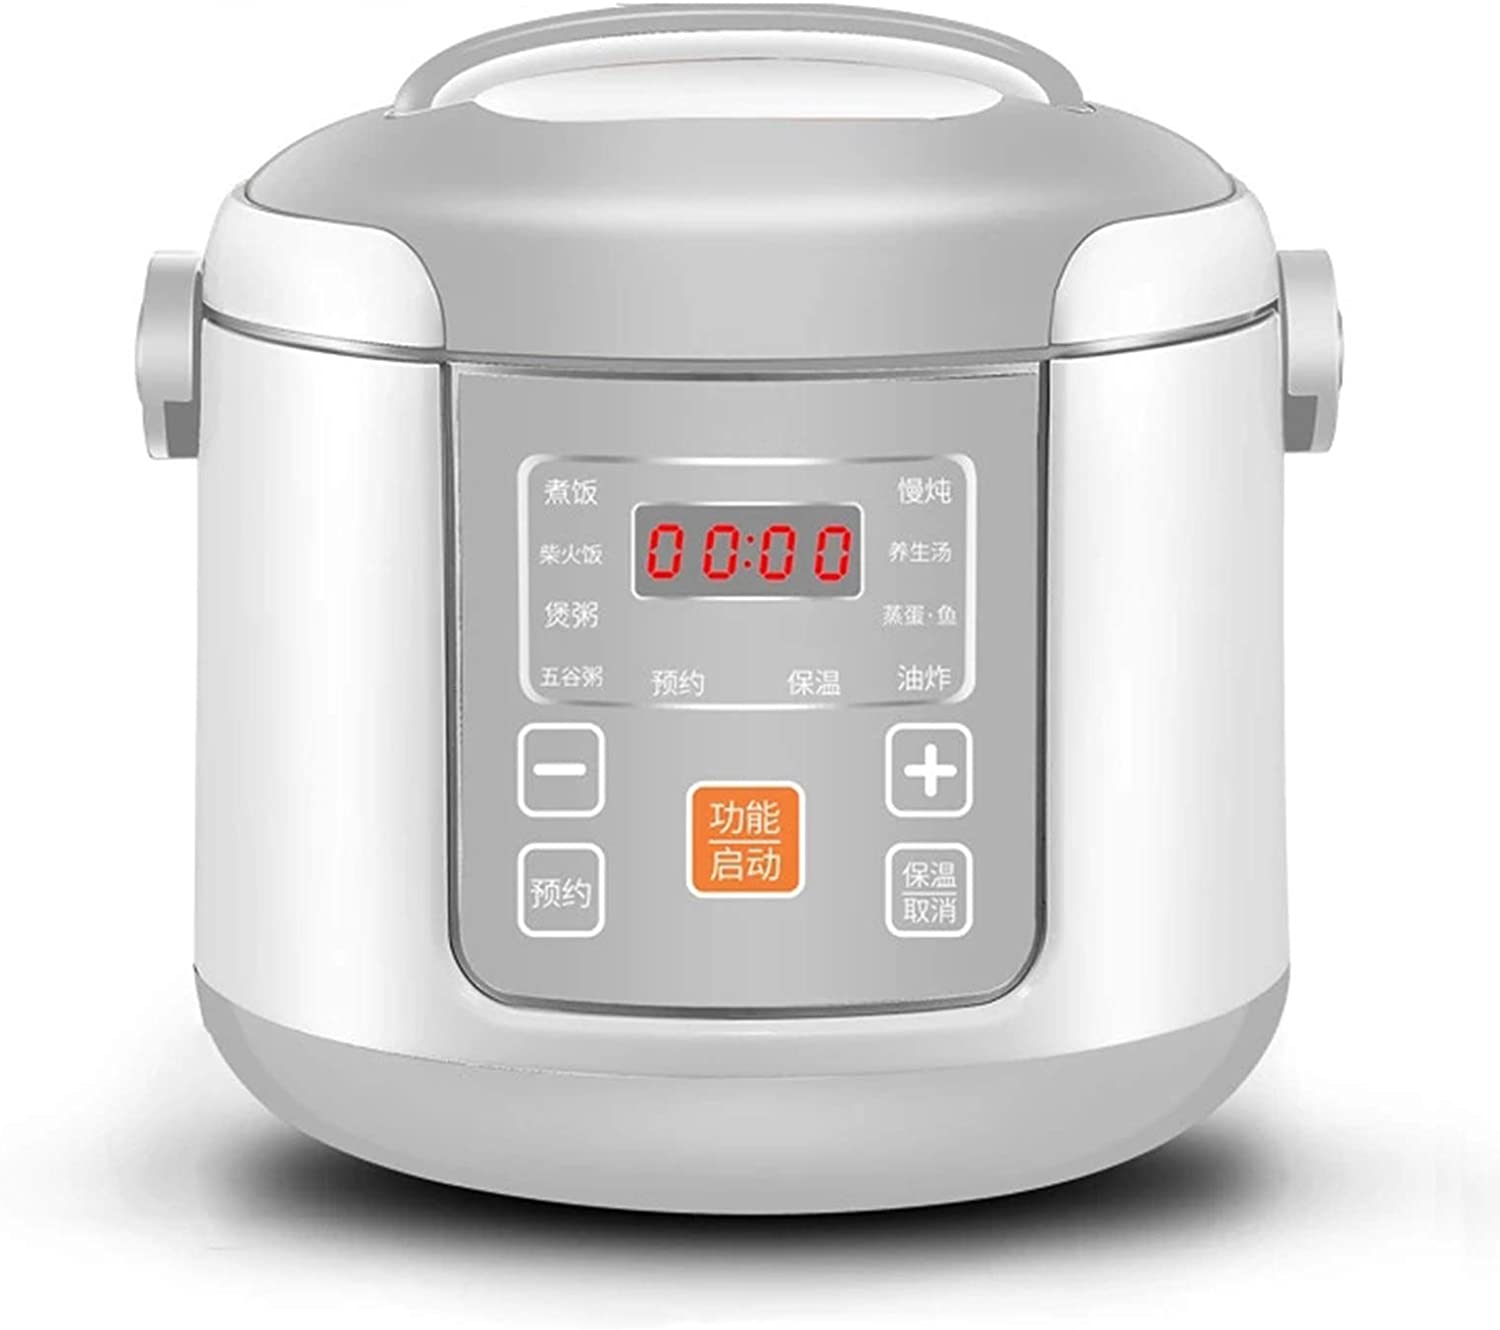 8-in-1 Electric Pressure Cooker, Sterilizer, Slow Cooker, Rice Cooker, Steamer, Saute, Warmer, 2 Liters Large Capacity